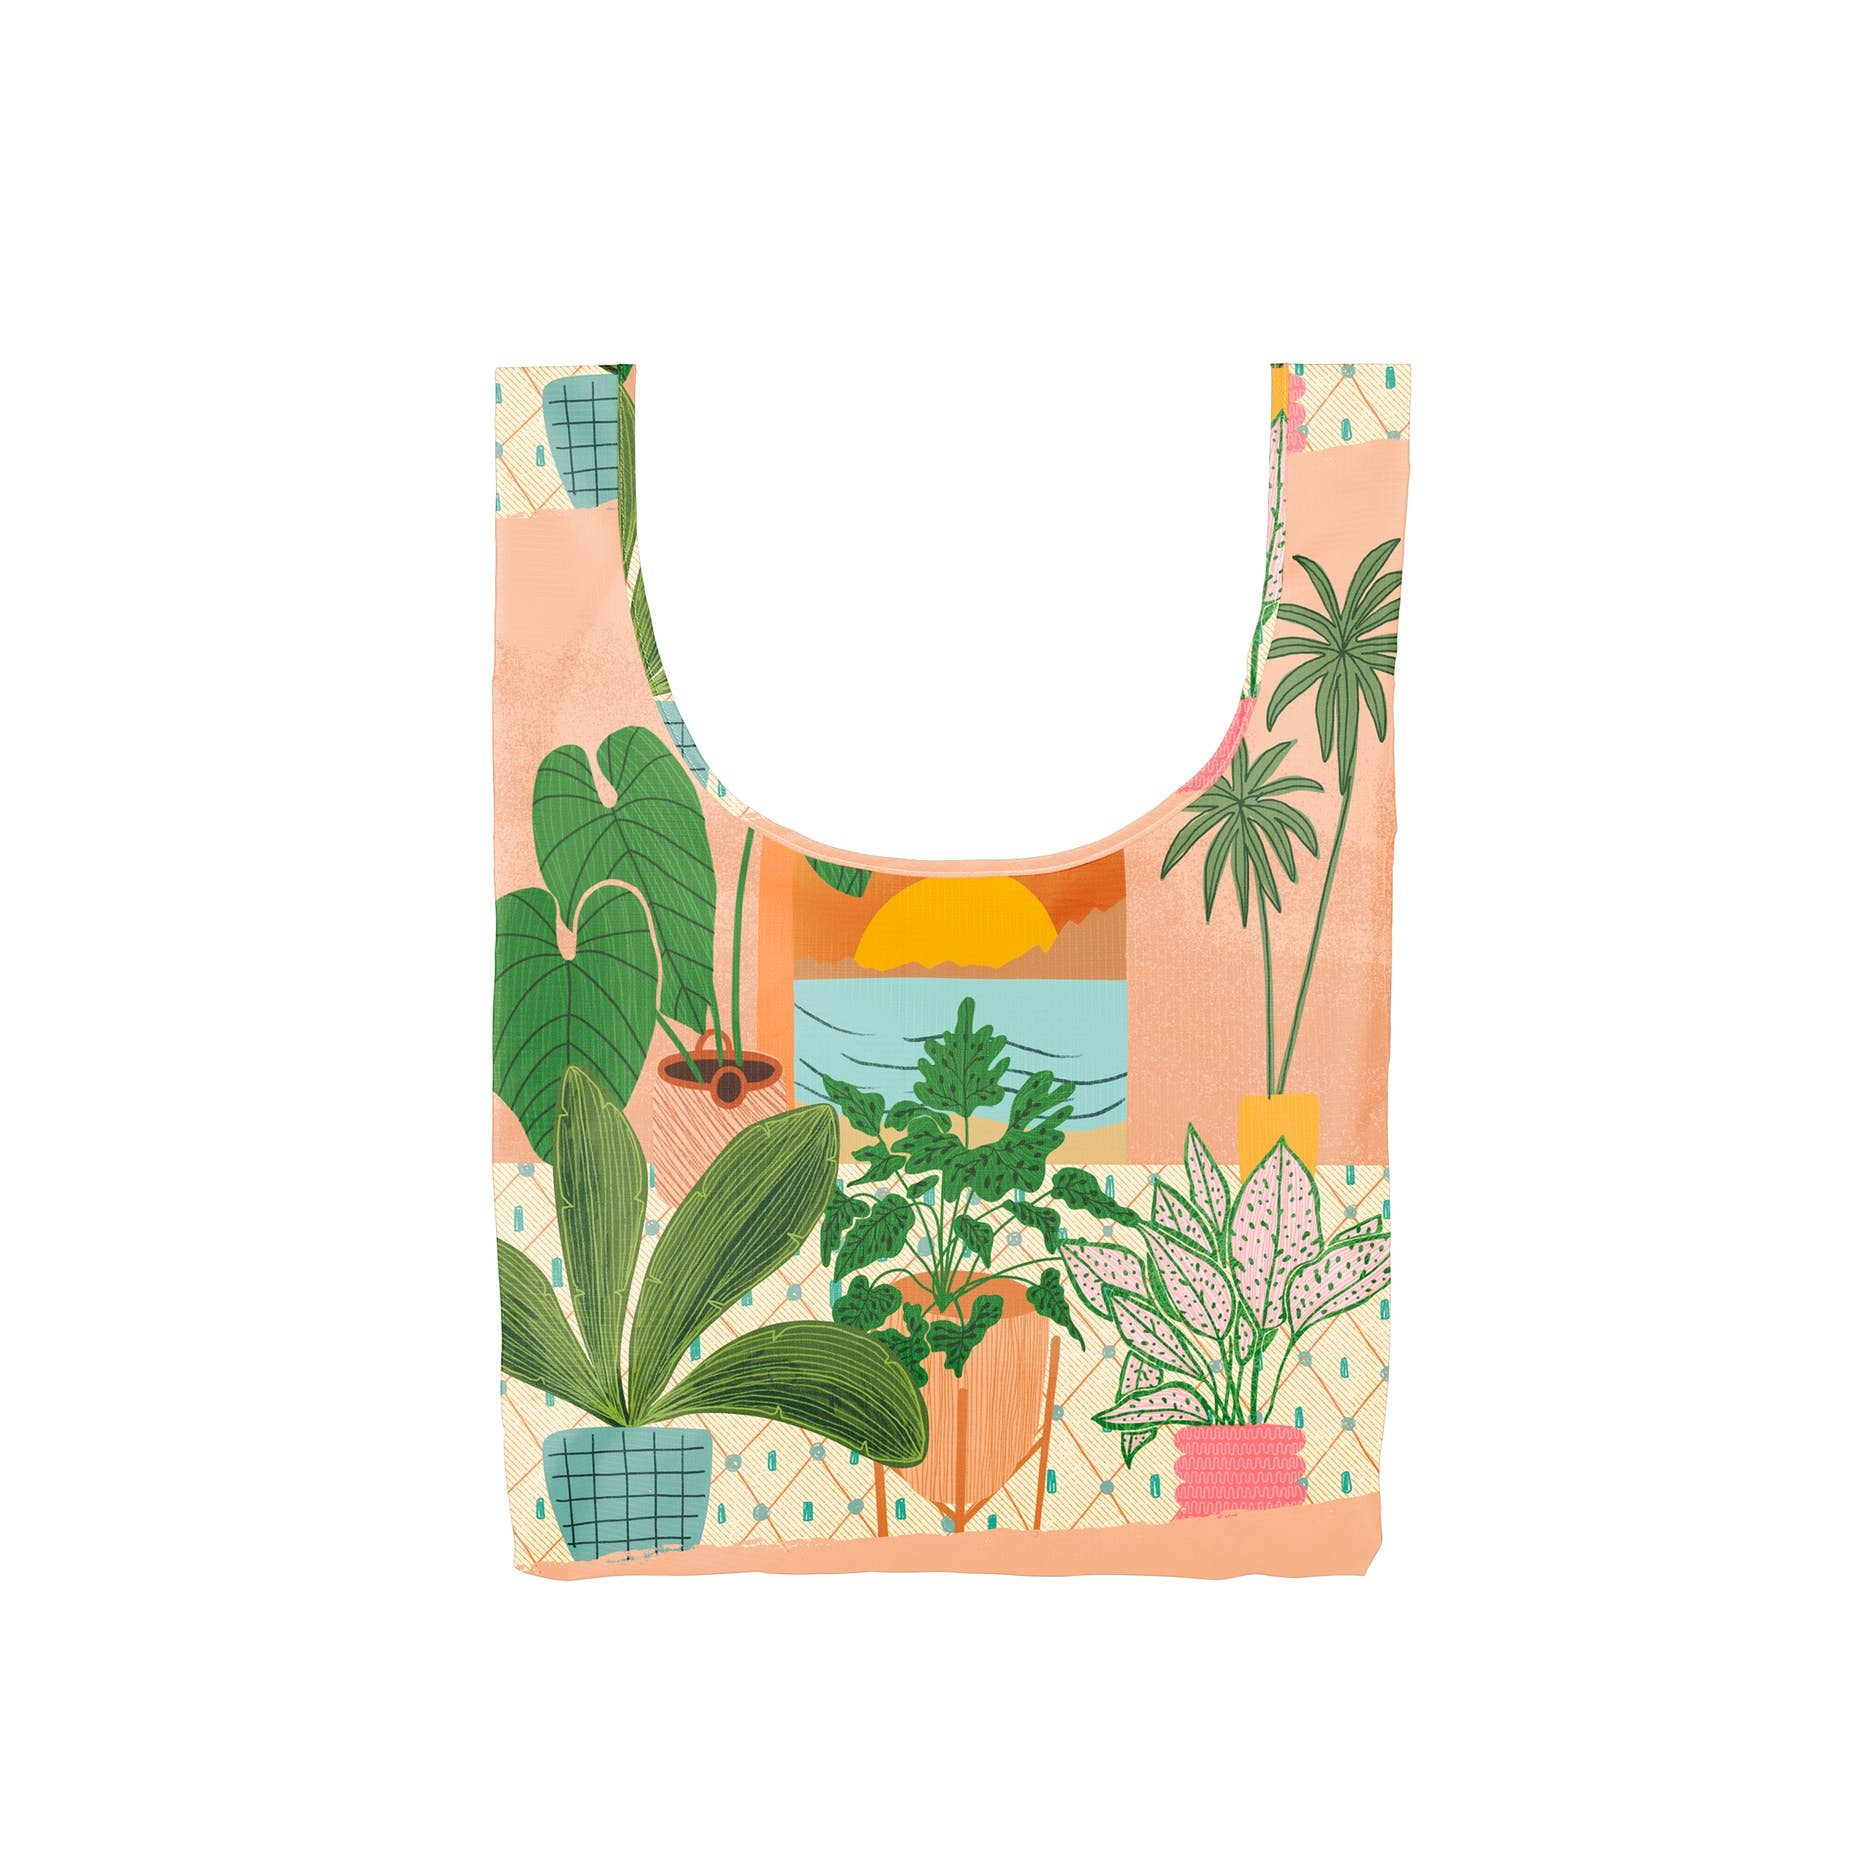 The Golden Hour Reusable Bag by Talking out of Turn